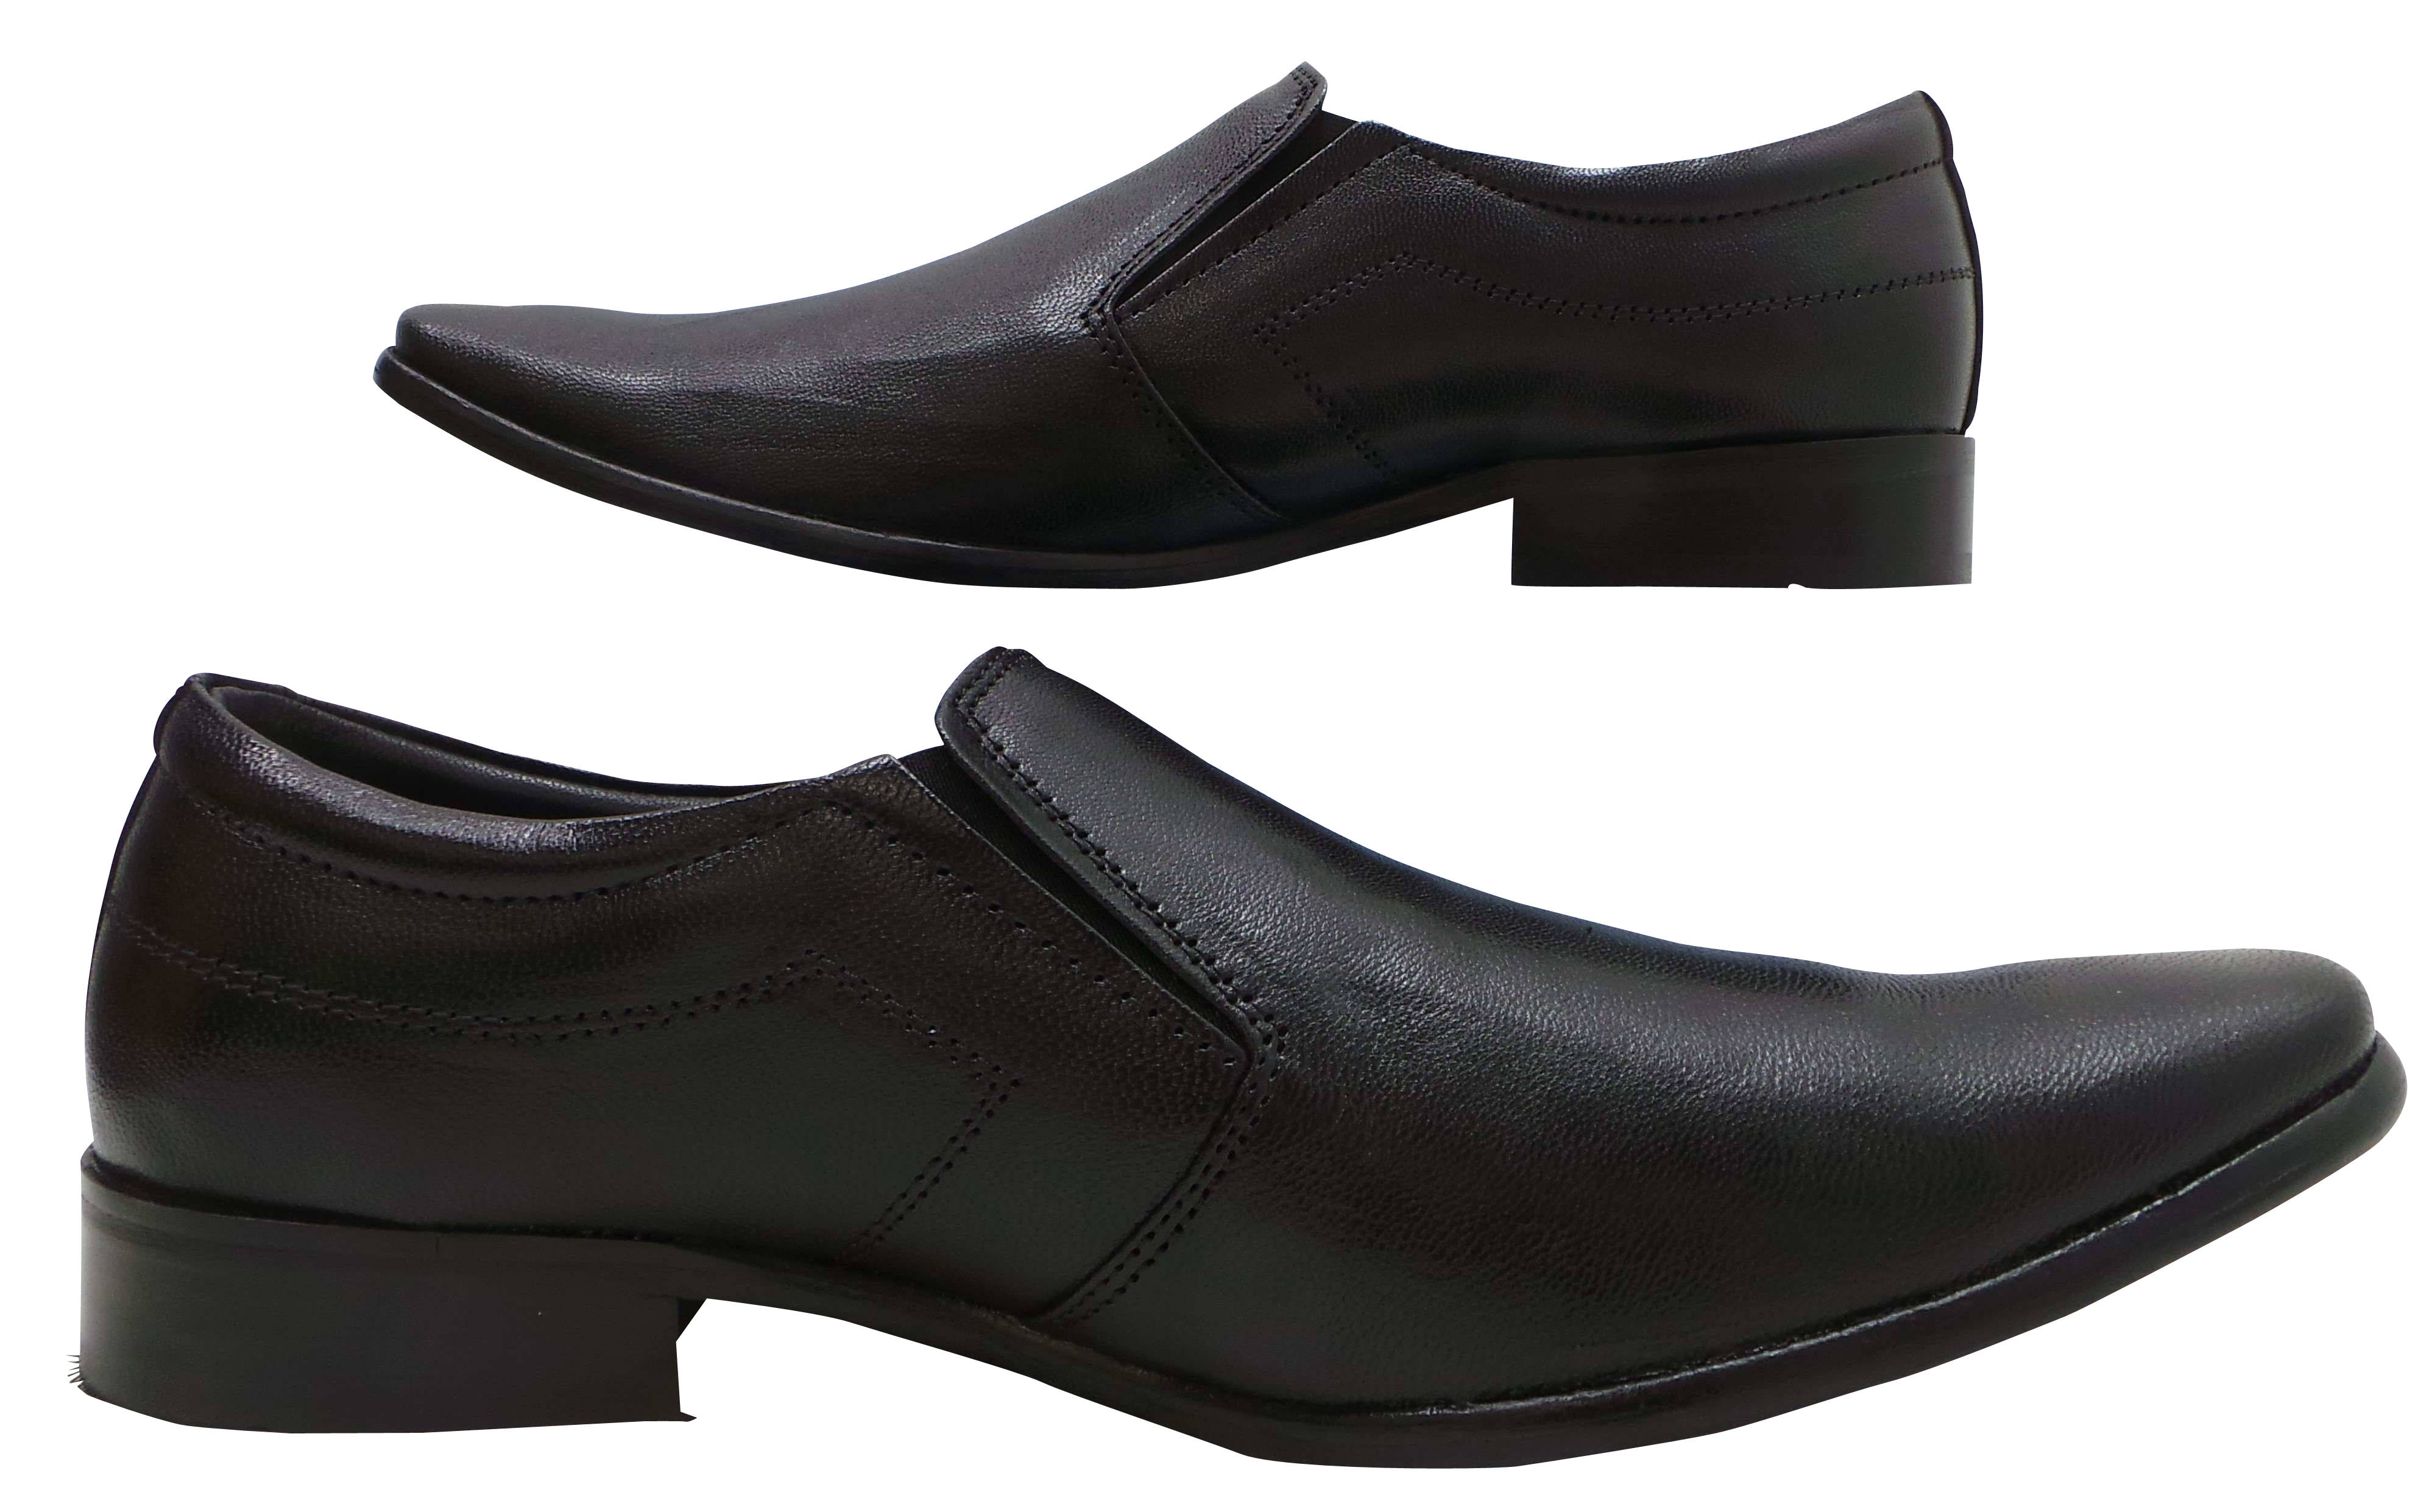 Find leather shoes at Vans. Shop for leather shoes, popular shoe styles, clothing, accessories, and much more!